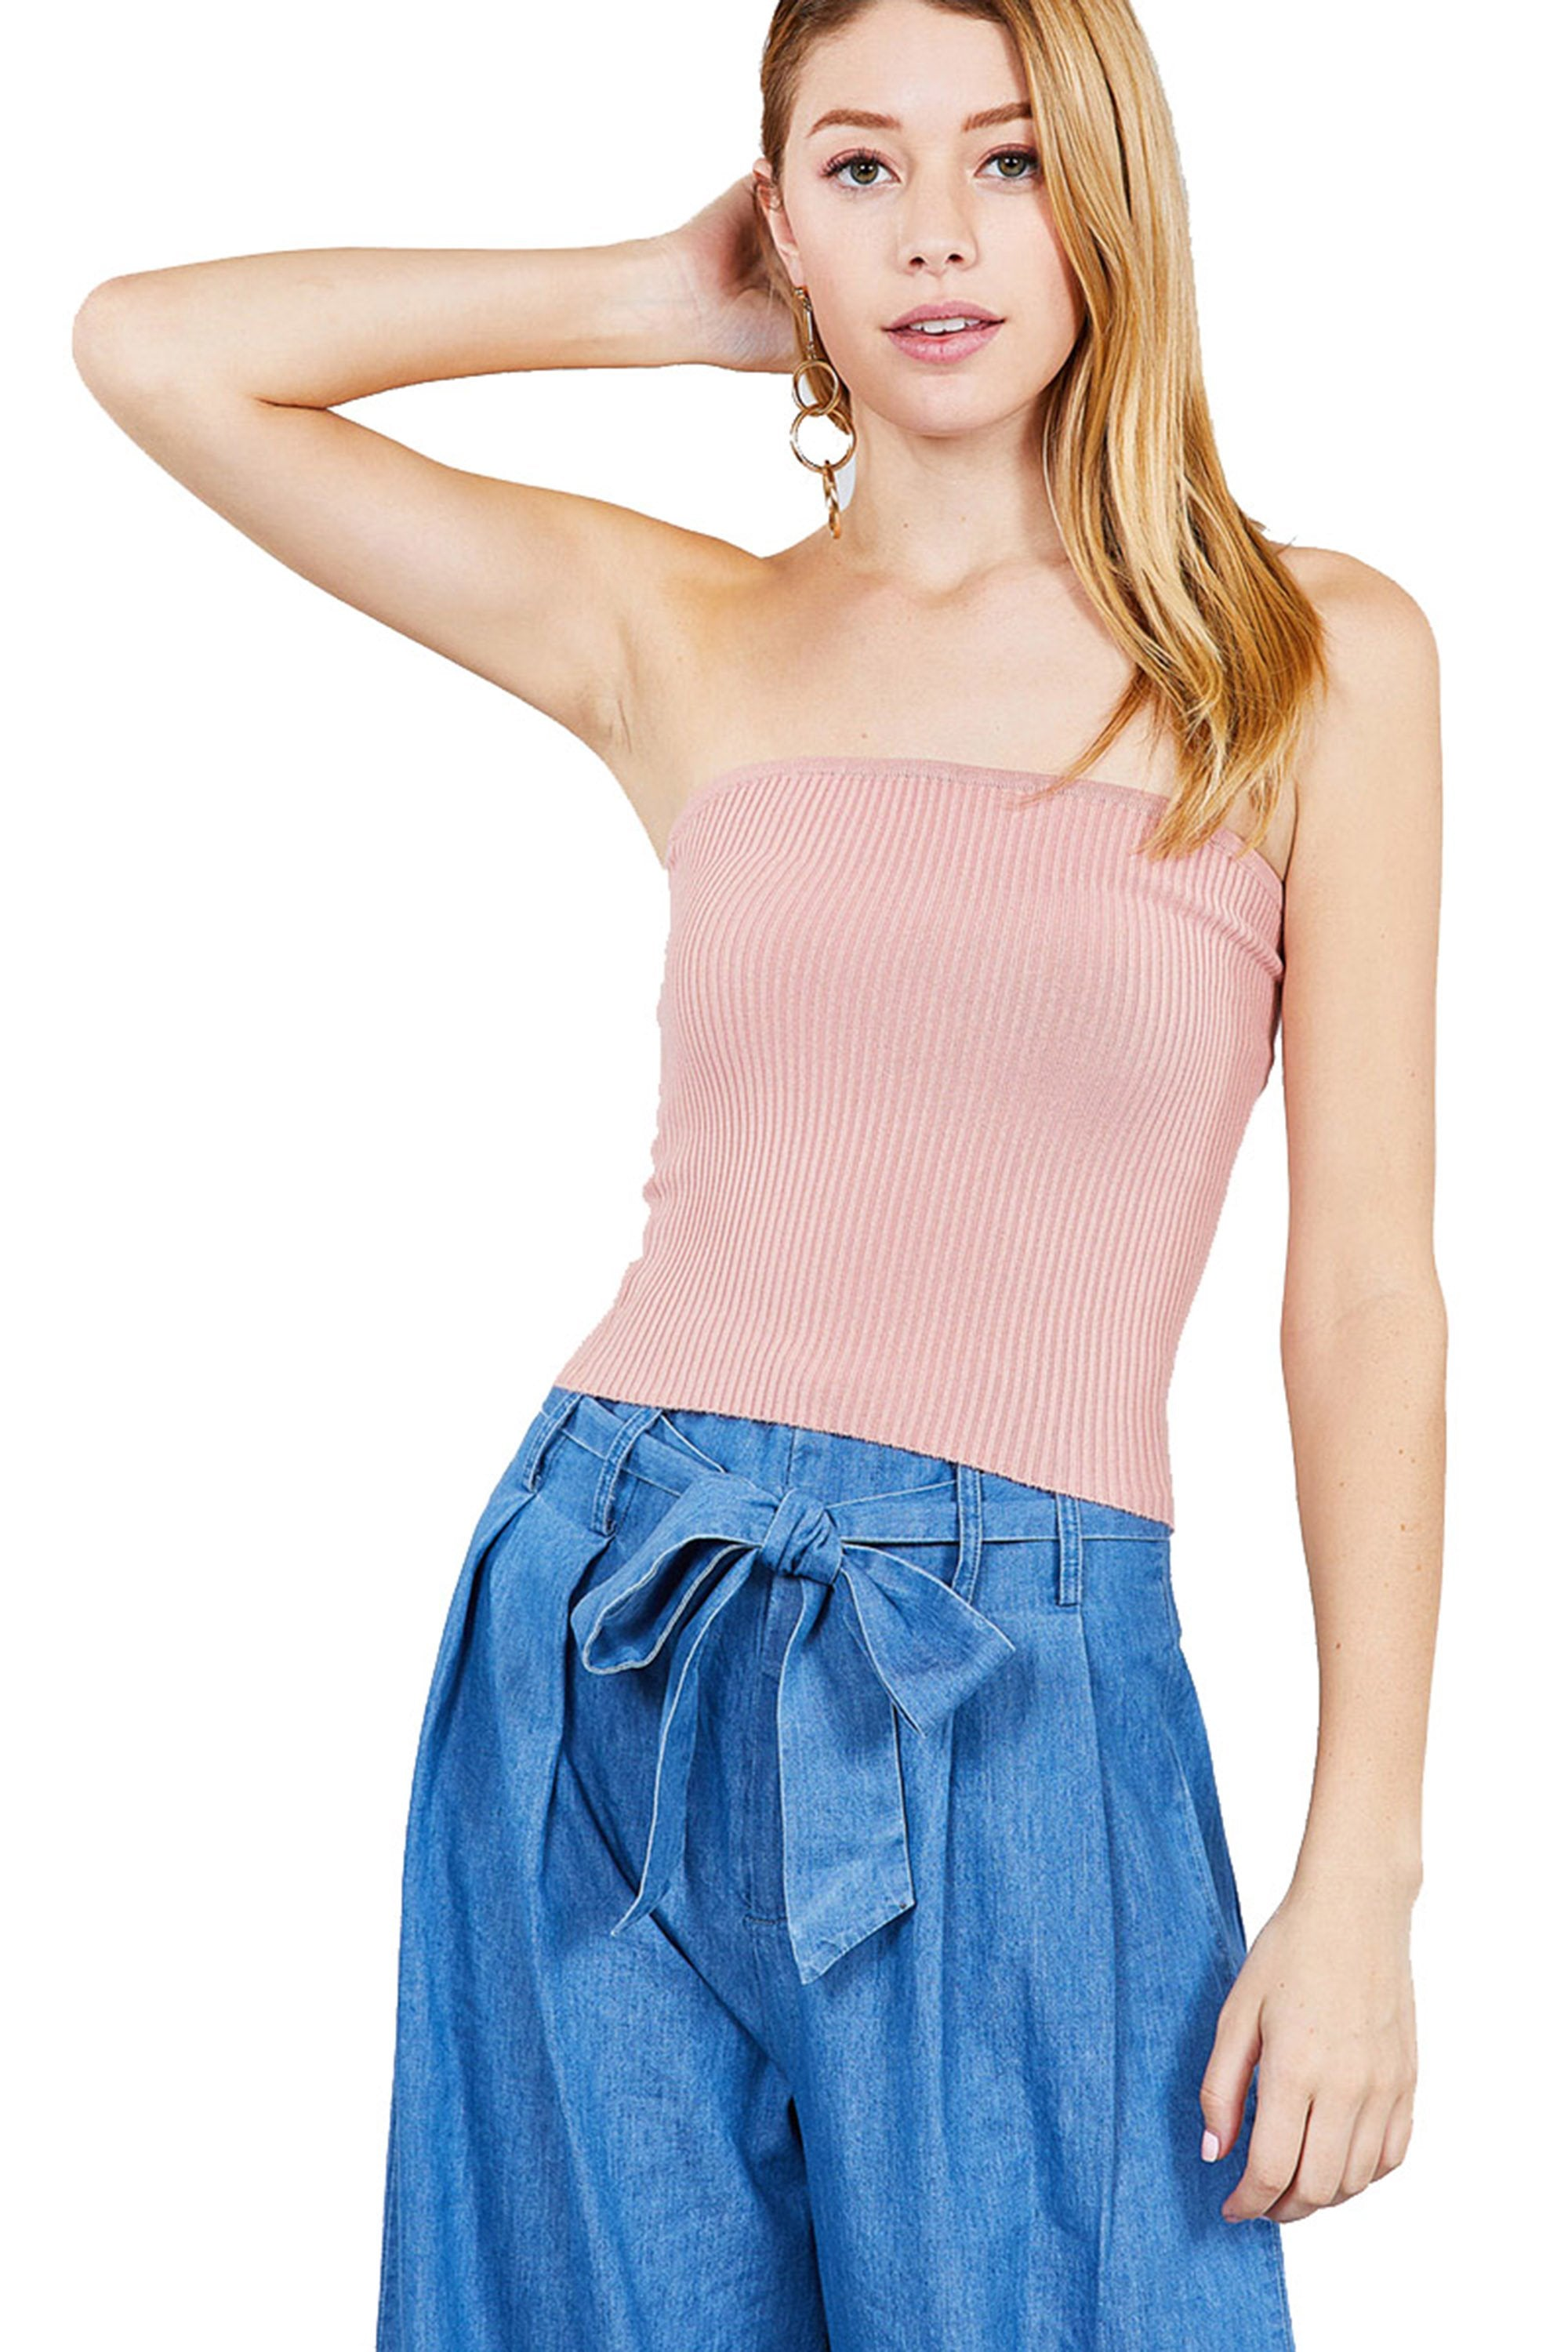 Khanomak Women's Casual Basic Rib Stretch Tube Sweater Crop top